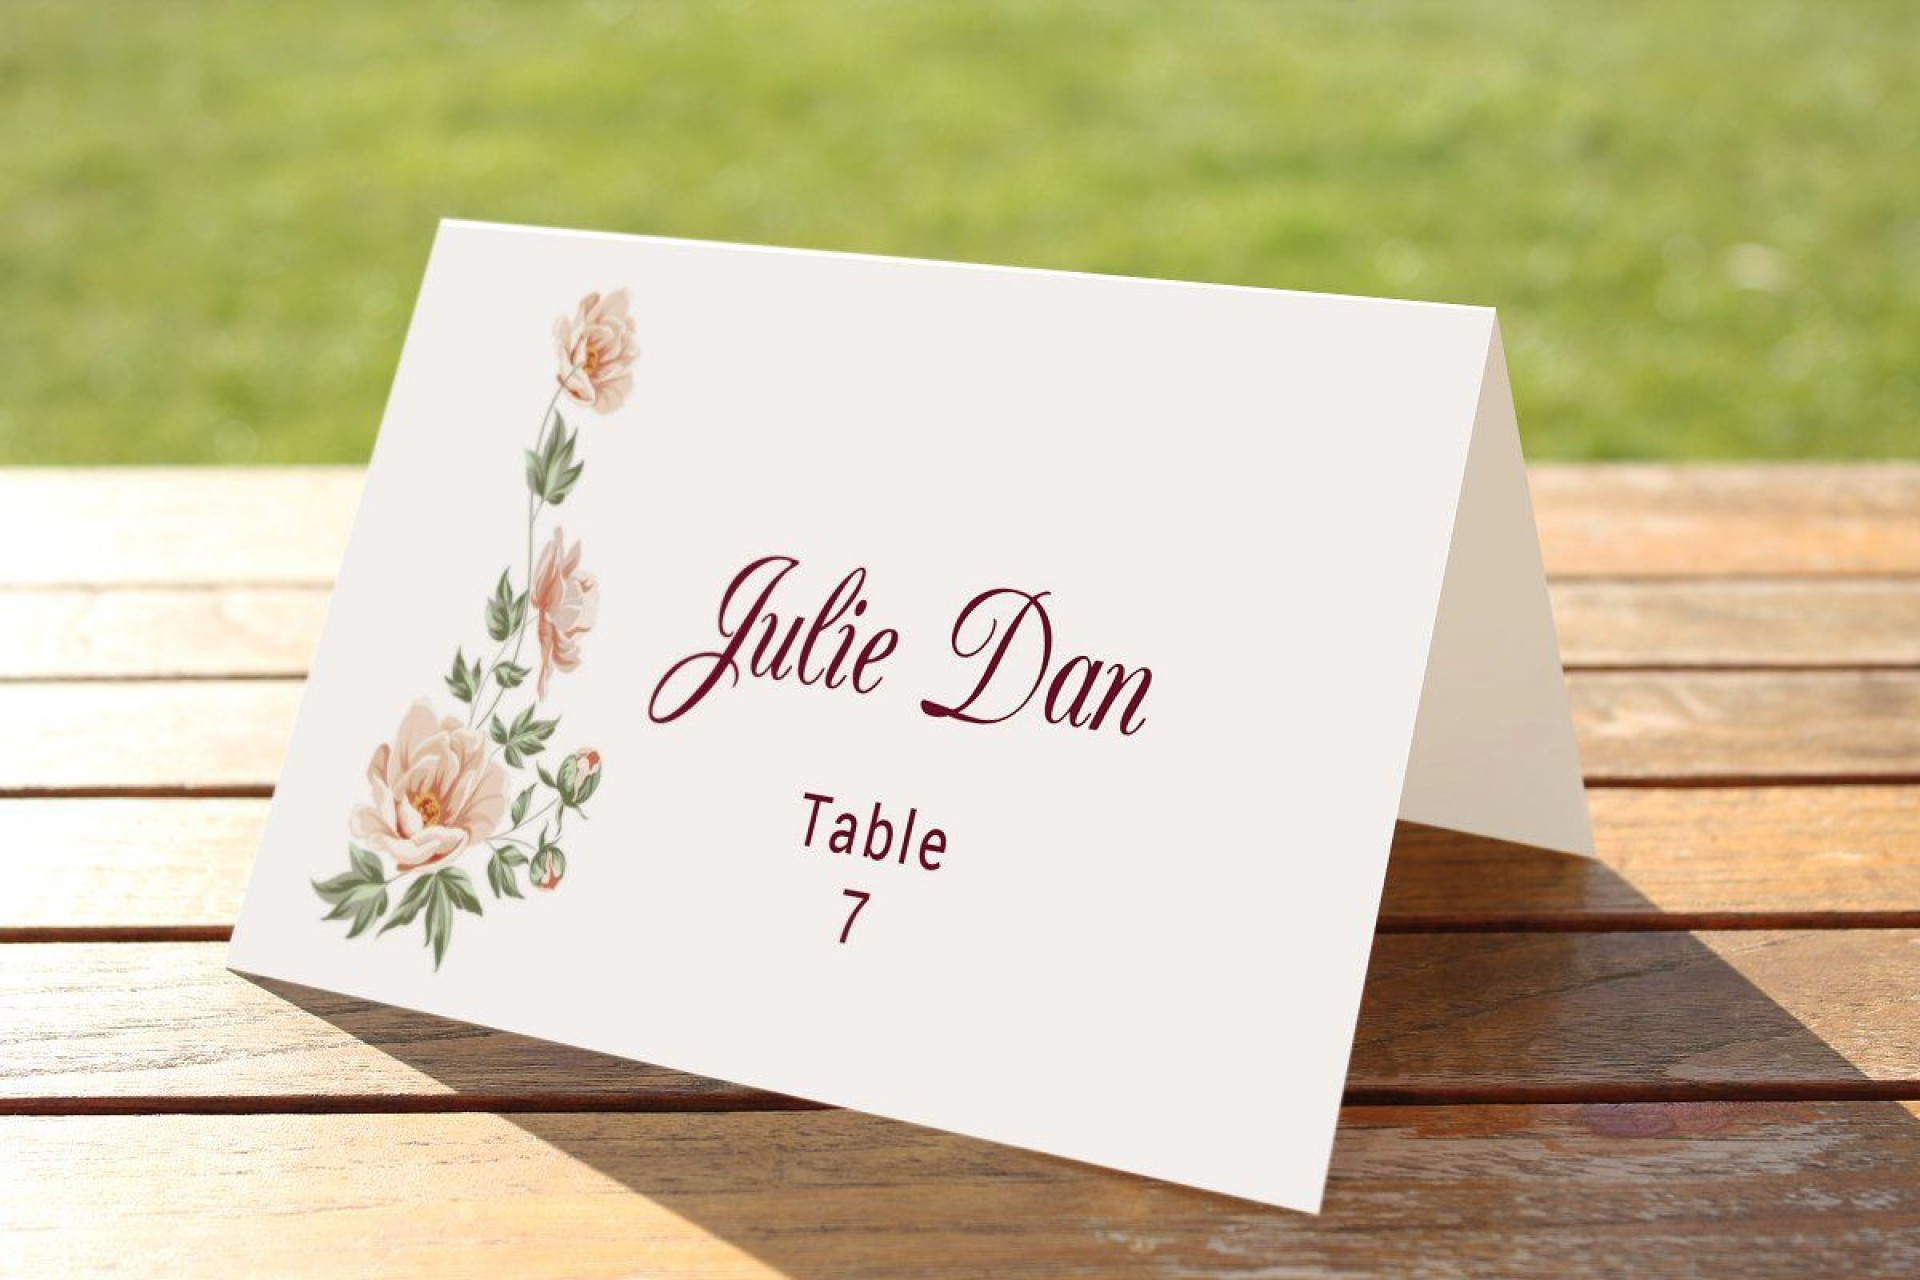 009 Striking Name Place Card Template For Wedding Sample  Free Word1920